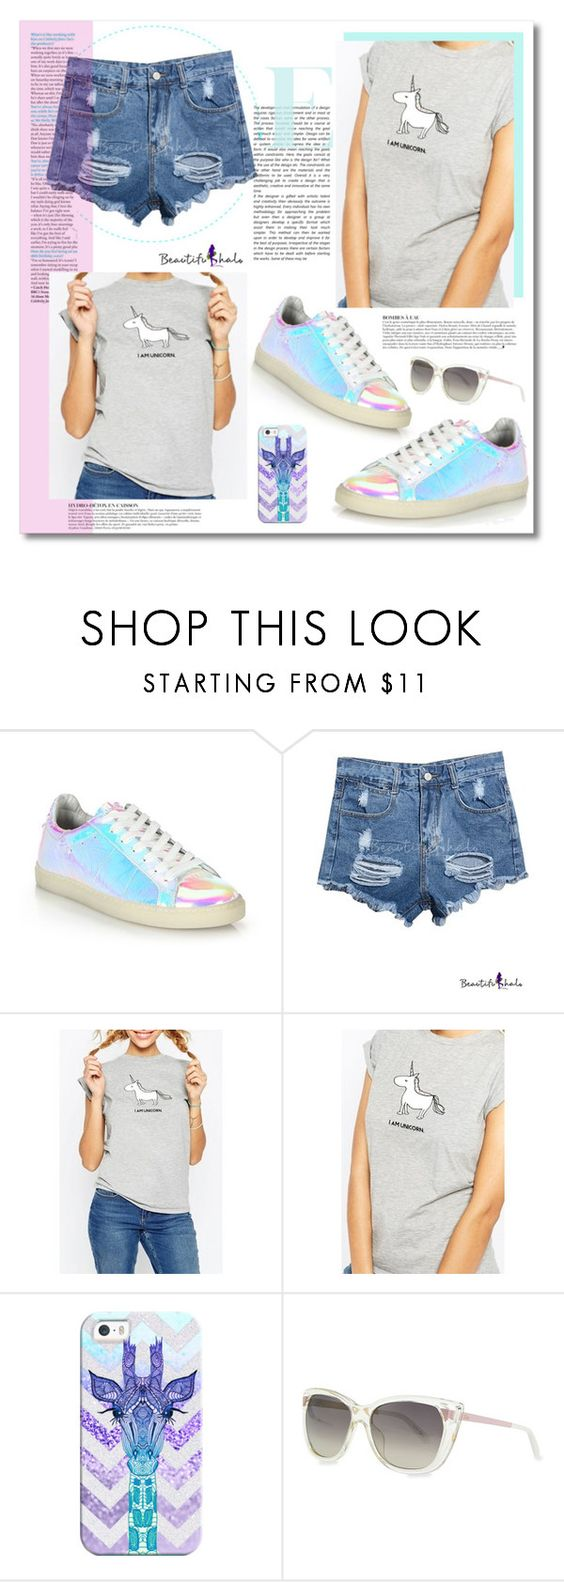 """I Am A Unicorn"" by katrinaalice ❤ liked on Polyvore featuring IRO, Anja, Casetify, Christian Dior, women's clothing, women, female, woman, misses and juniors"